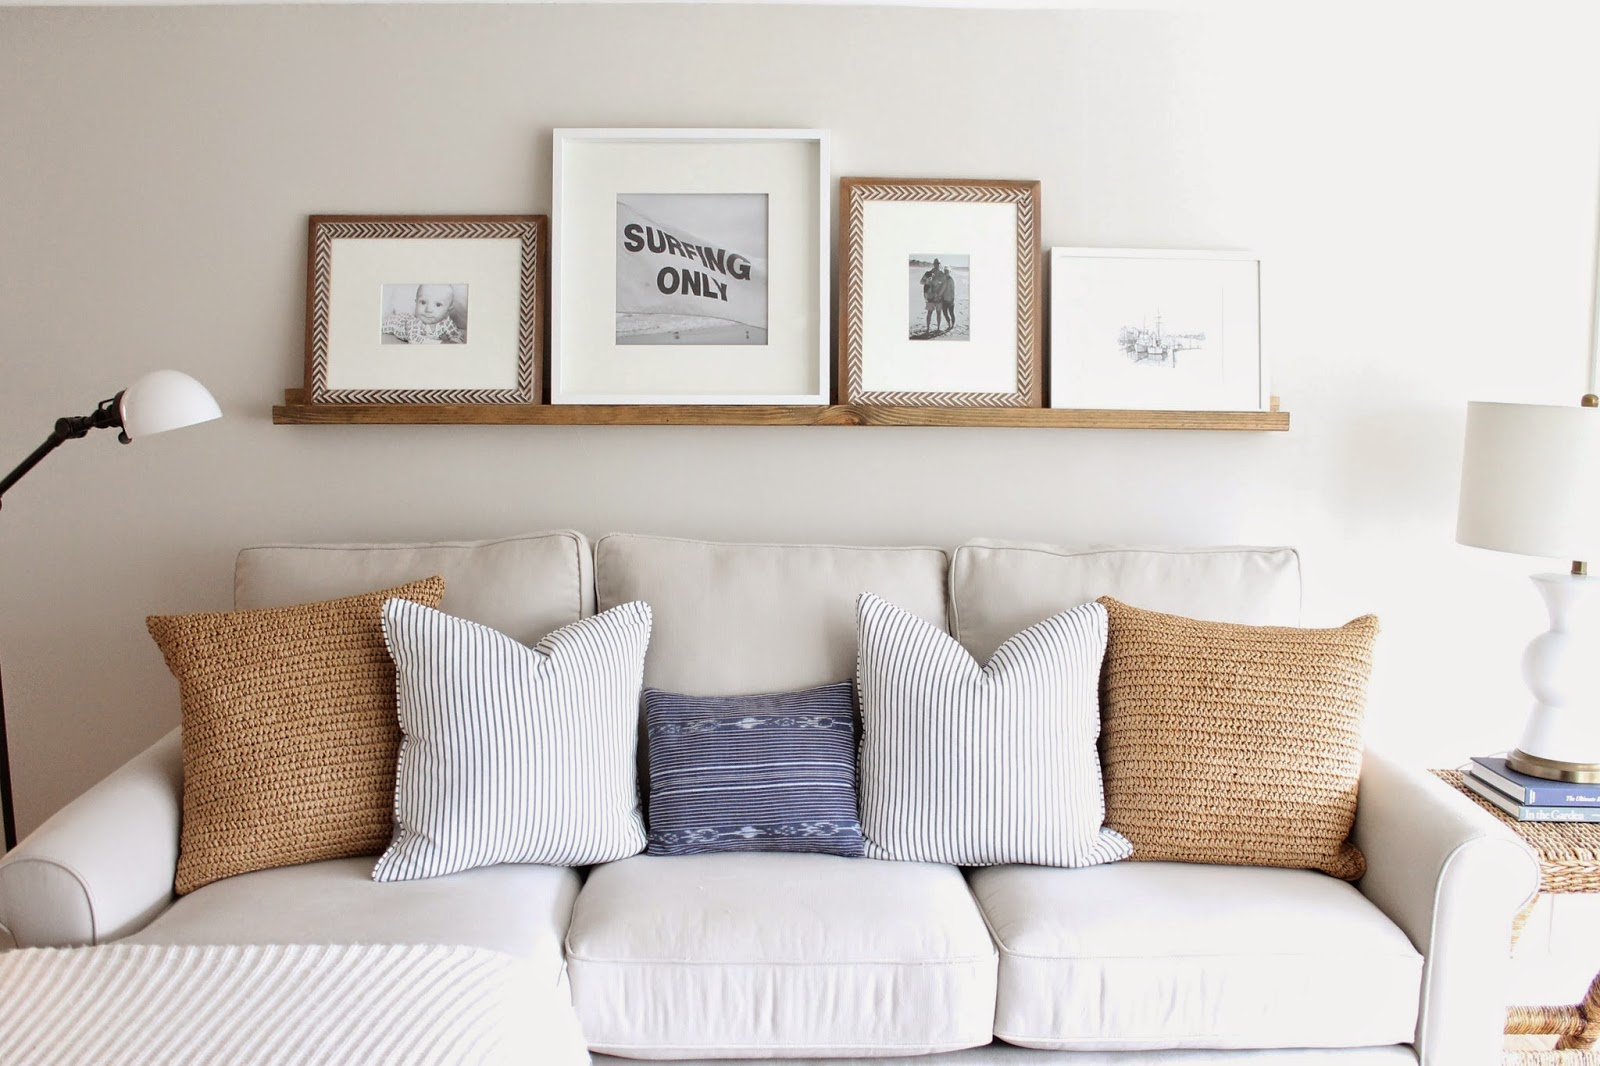 decorating ideas for living room with brown couch beach furniture amazing picture ledge creating a statement wall ...